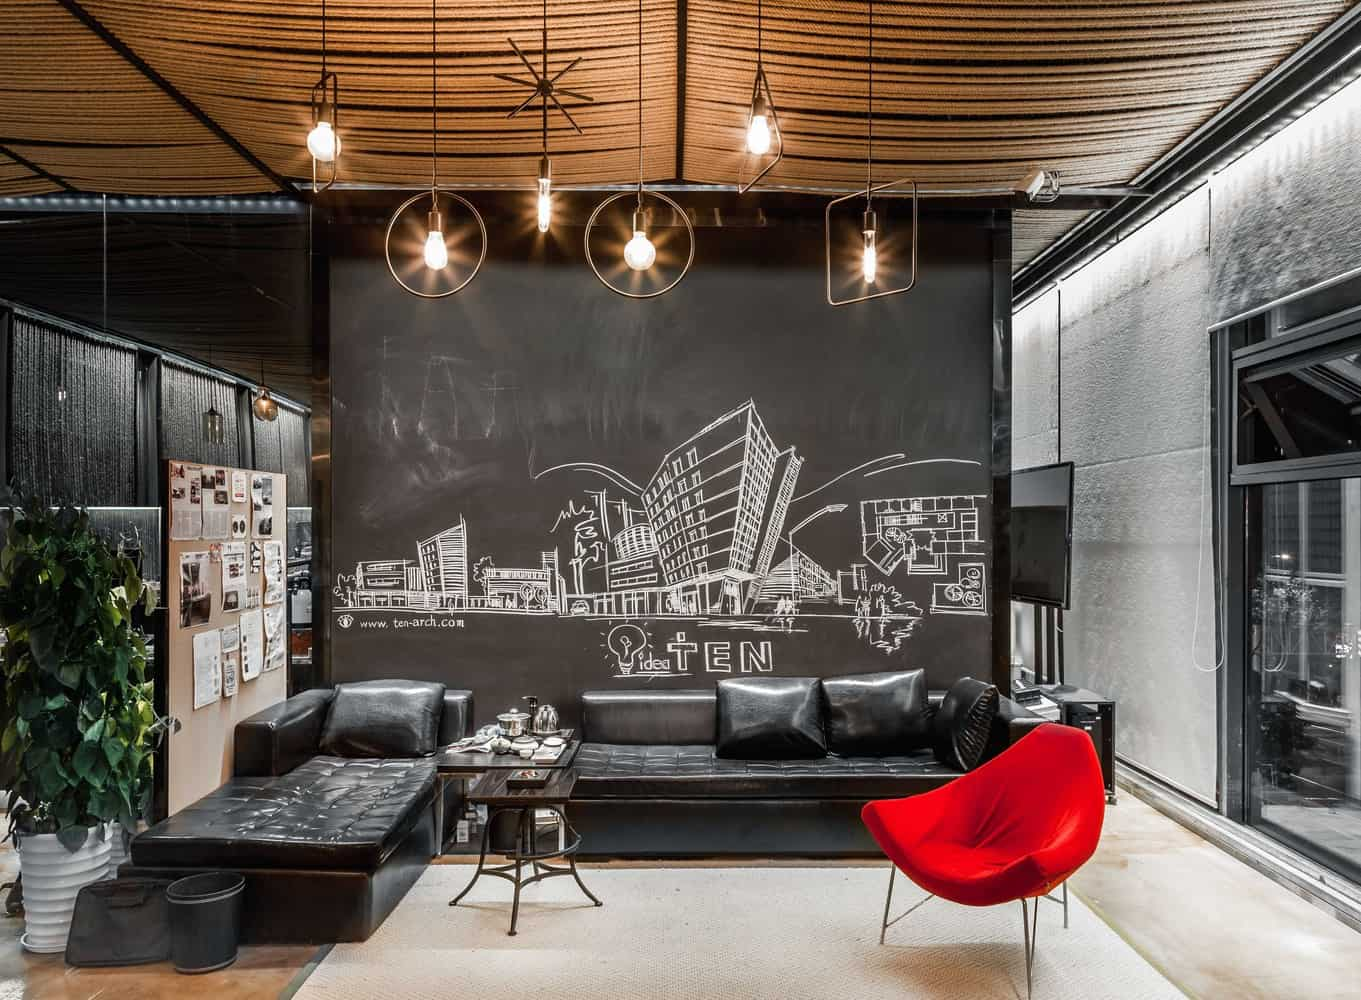 Office Space Designed By Usual Studio + Ten Arch In The QSW Culture Center  In Shanghai, ...